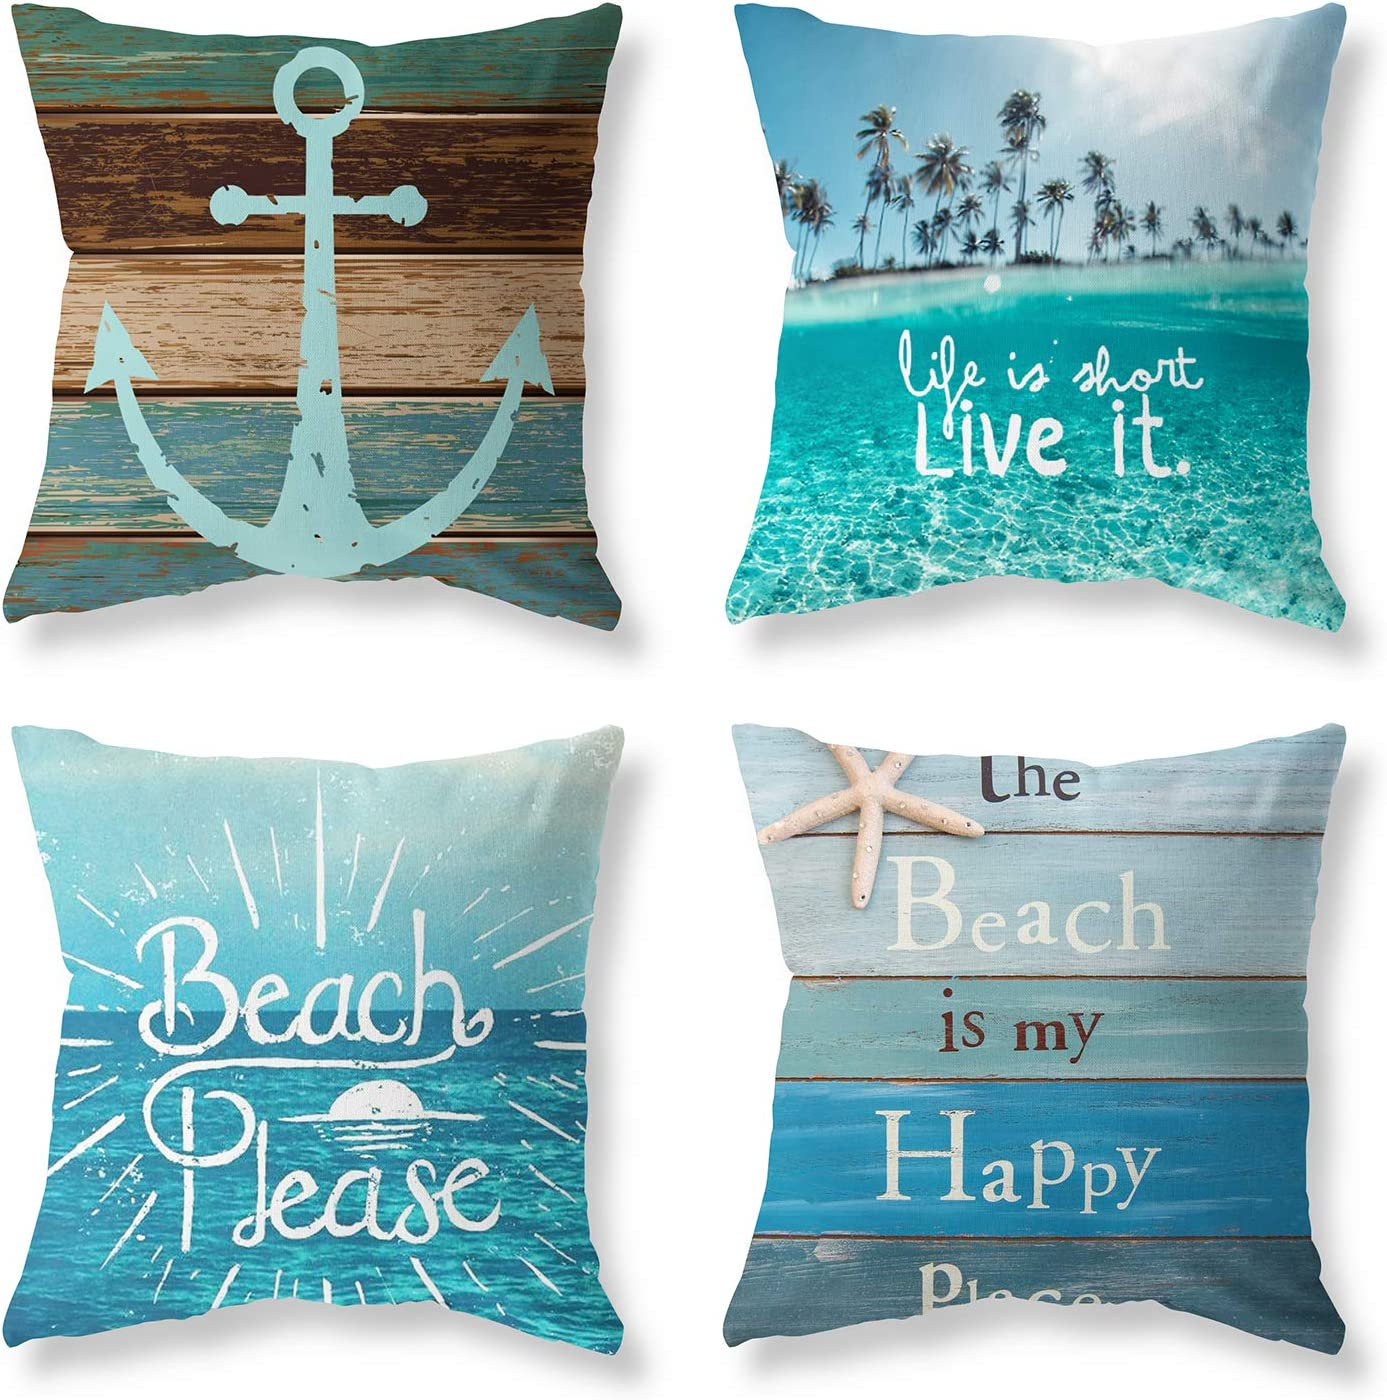 Pack of 4 Decorative Throw Pillow Covers Sets 18x18 Inch Blue Ocean Beach Theme Pillowcases Square Outdoor Cushion Cover Wood Grain Sea Anchor Printing Pillows Covers for Home Decor Sofa Car Bedroom